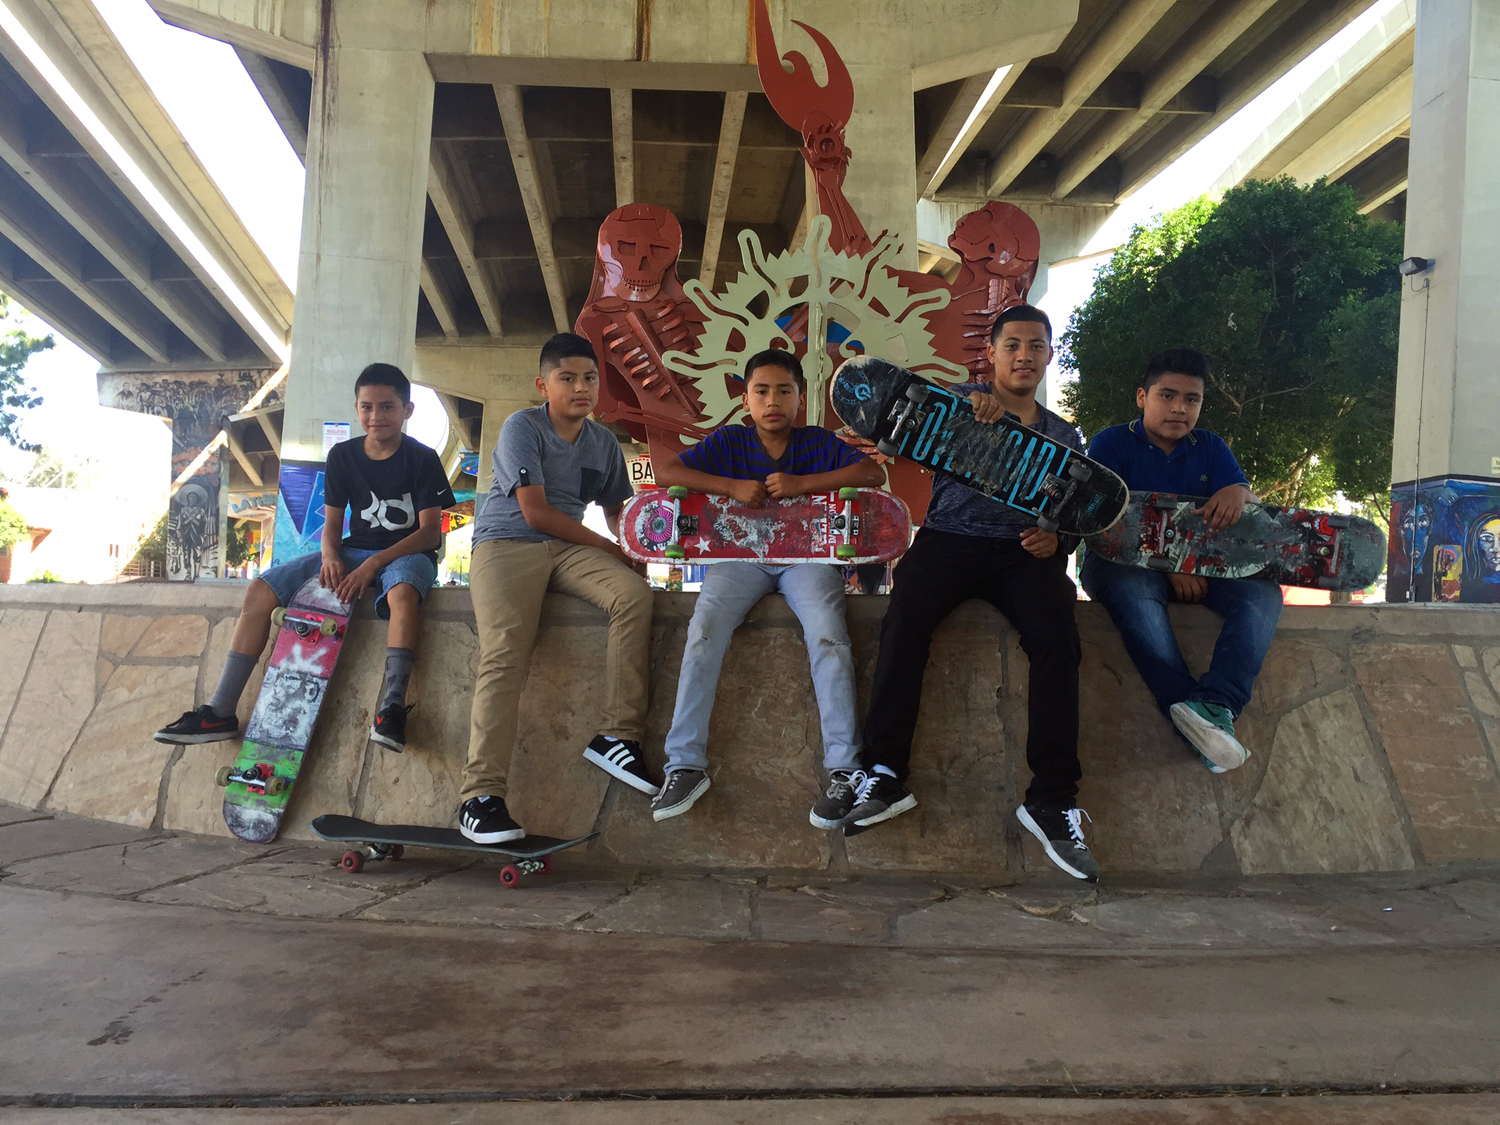 Chicano Park Barrio Logan skate crew San Diego, CA  ©  Jud Burgess 2016  6 months later Laurie and I are on the other side of the country in San Diego and I convince this young group of Chicano skaters to sit for a portrait.  Surfing concrete under concrete.